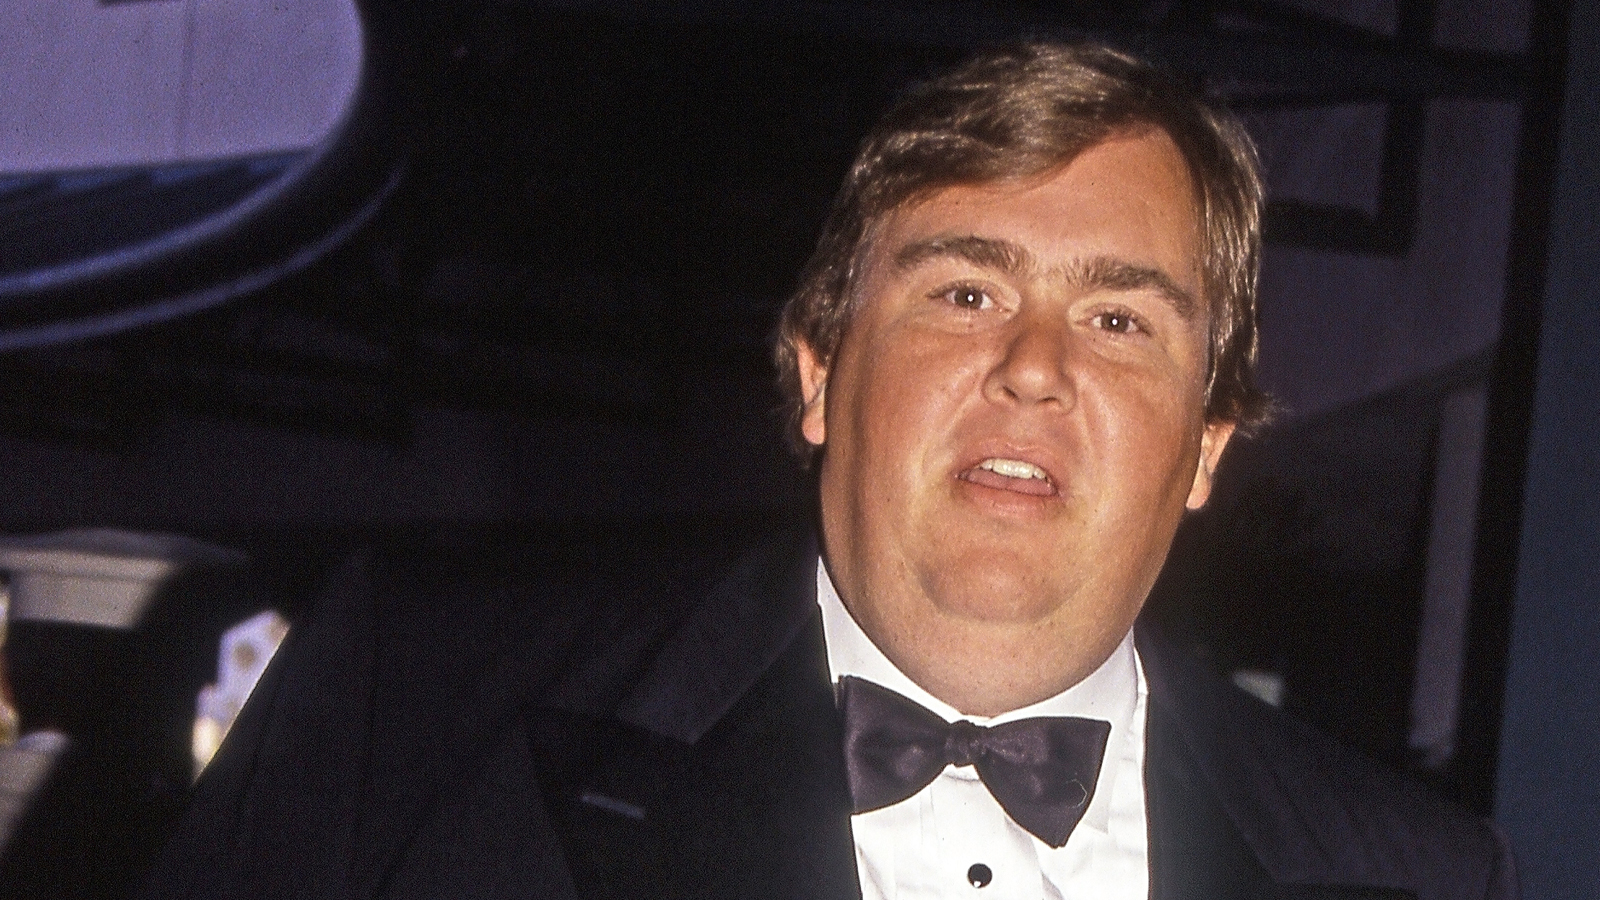 10 Grim Details Surrounding The Death Of John Candy, The Beloved Comedian Who Shook Up Hollywood